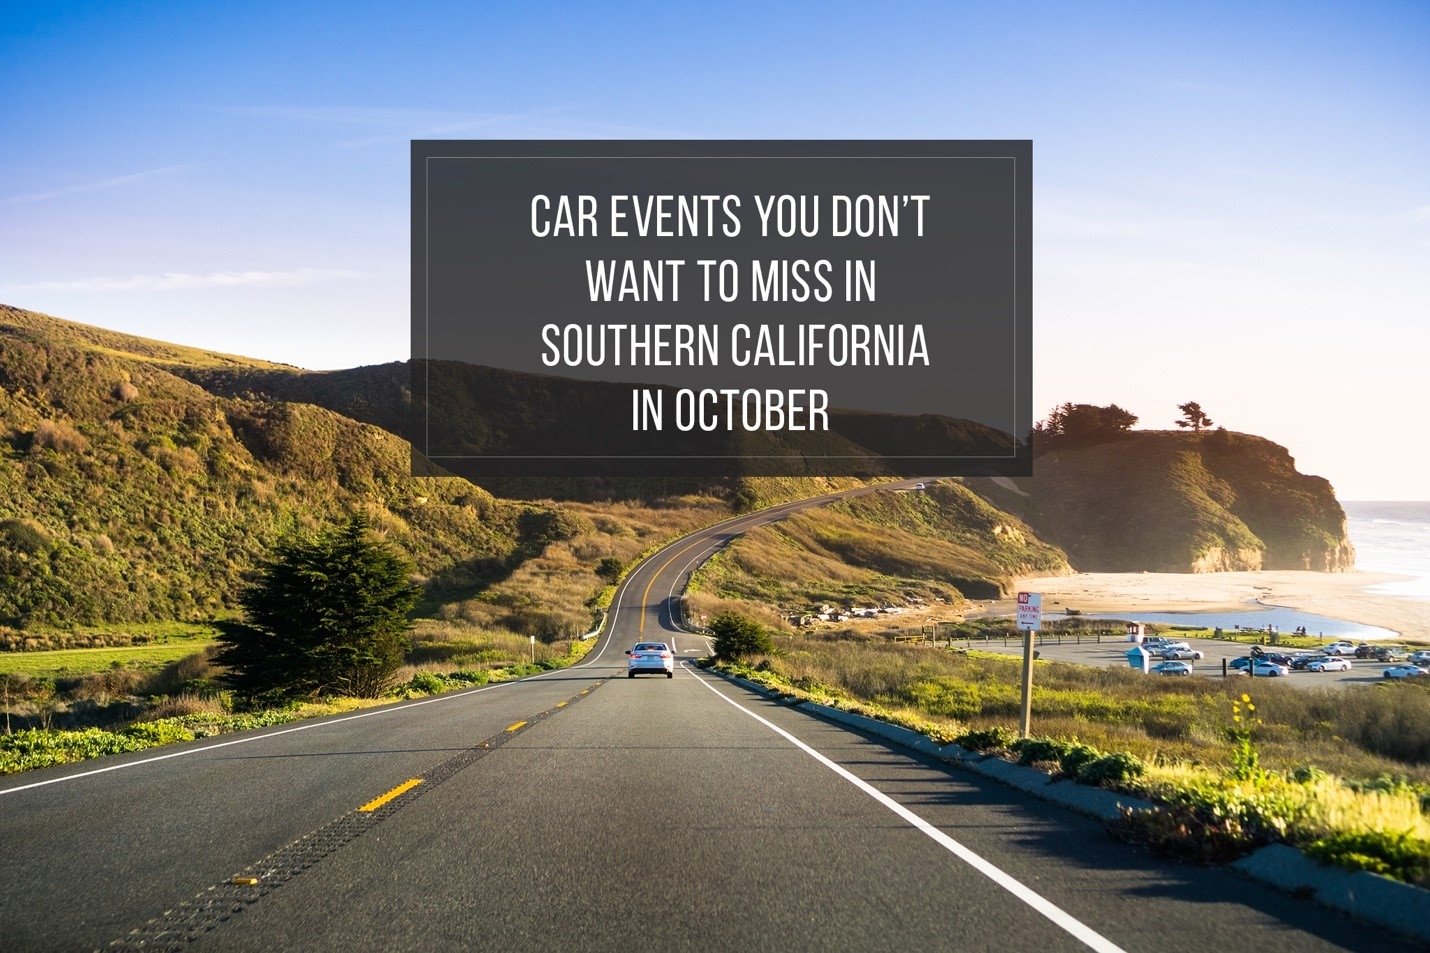 October Southern California Car Events